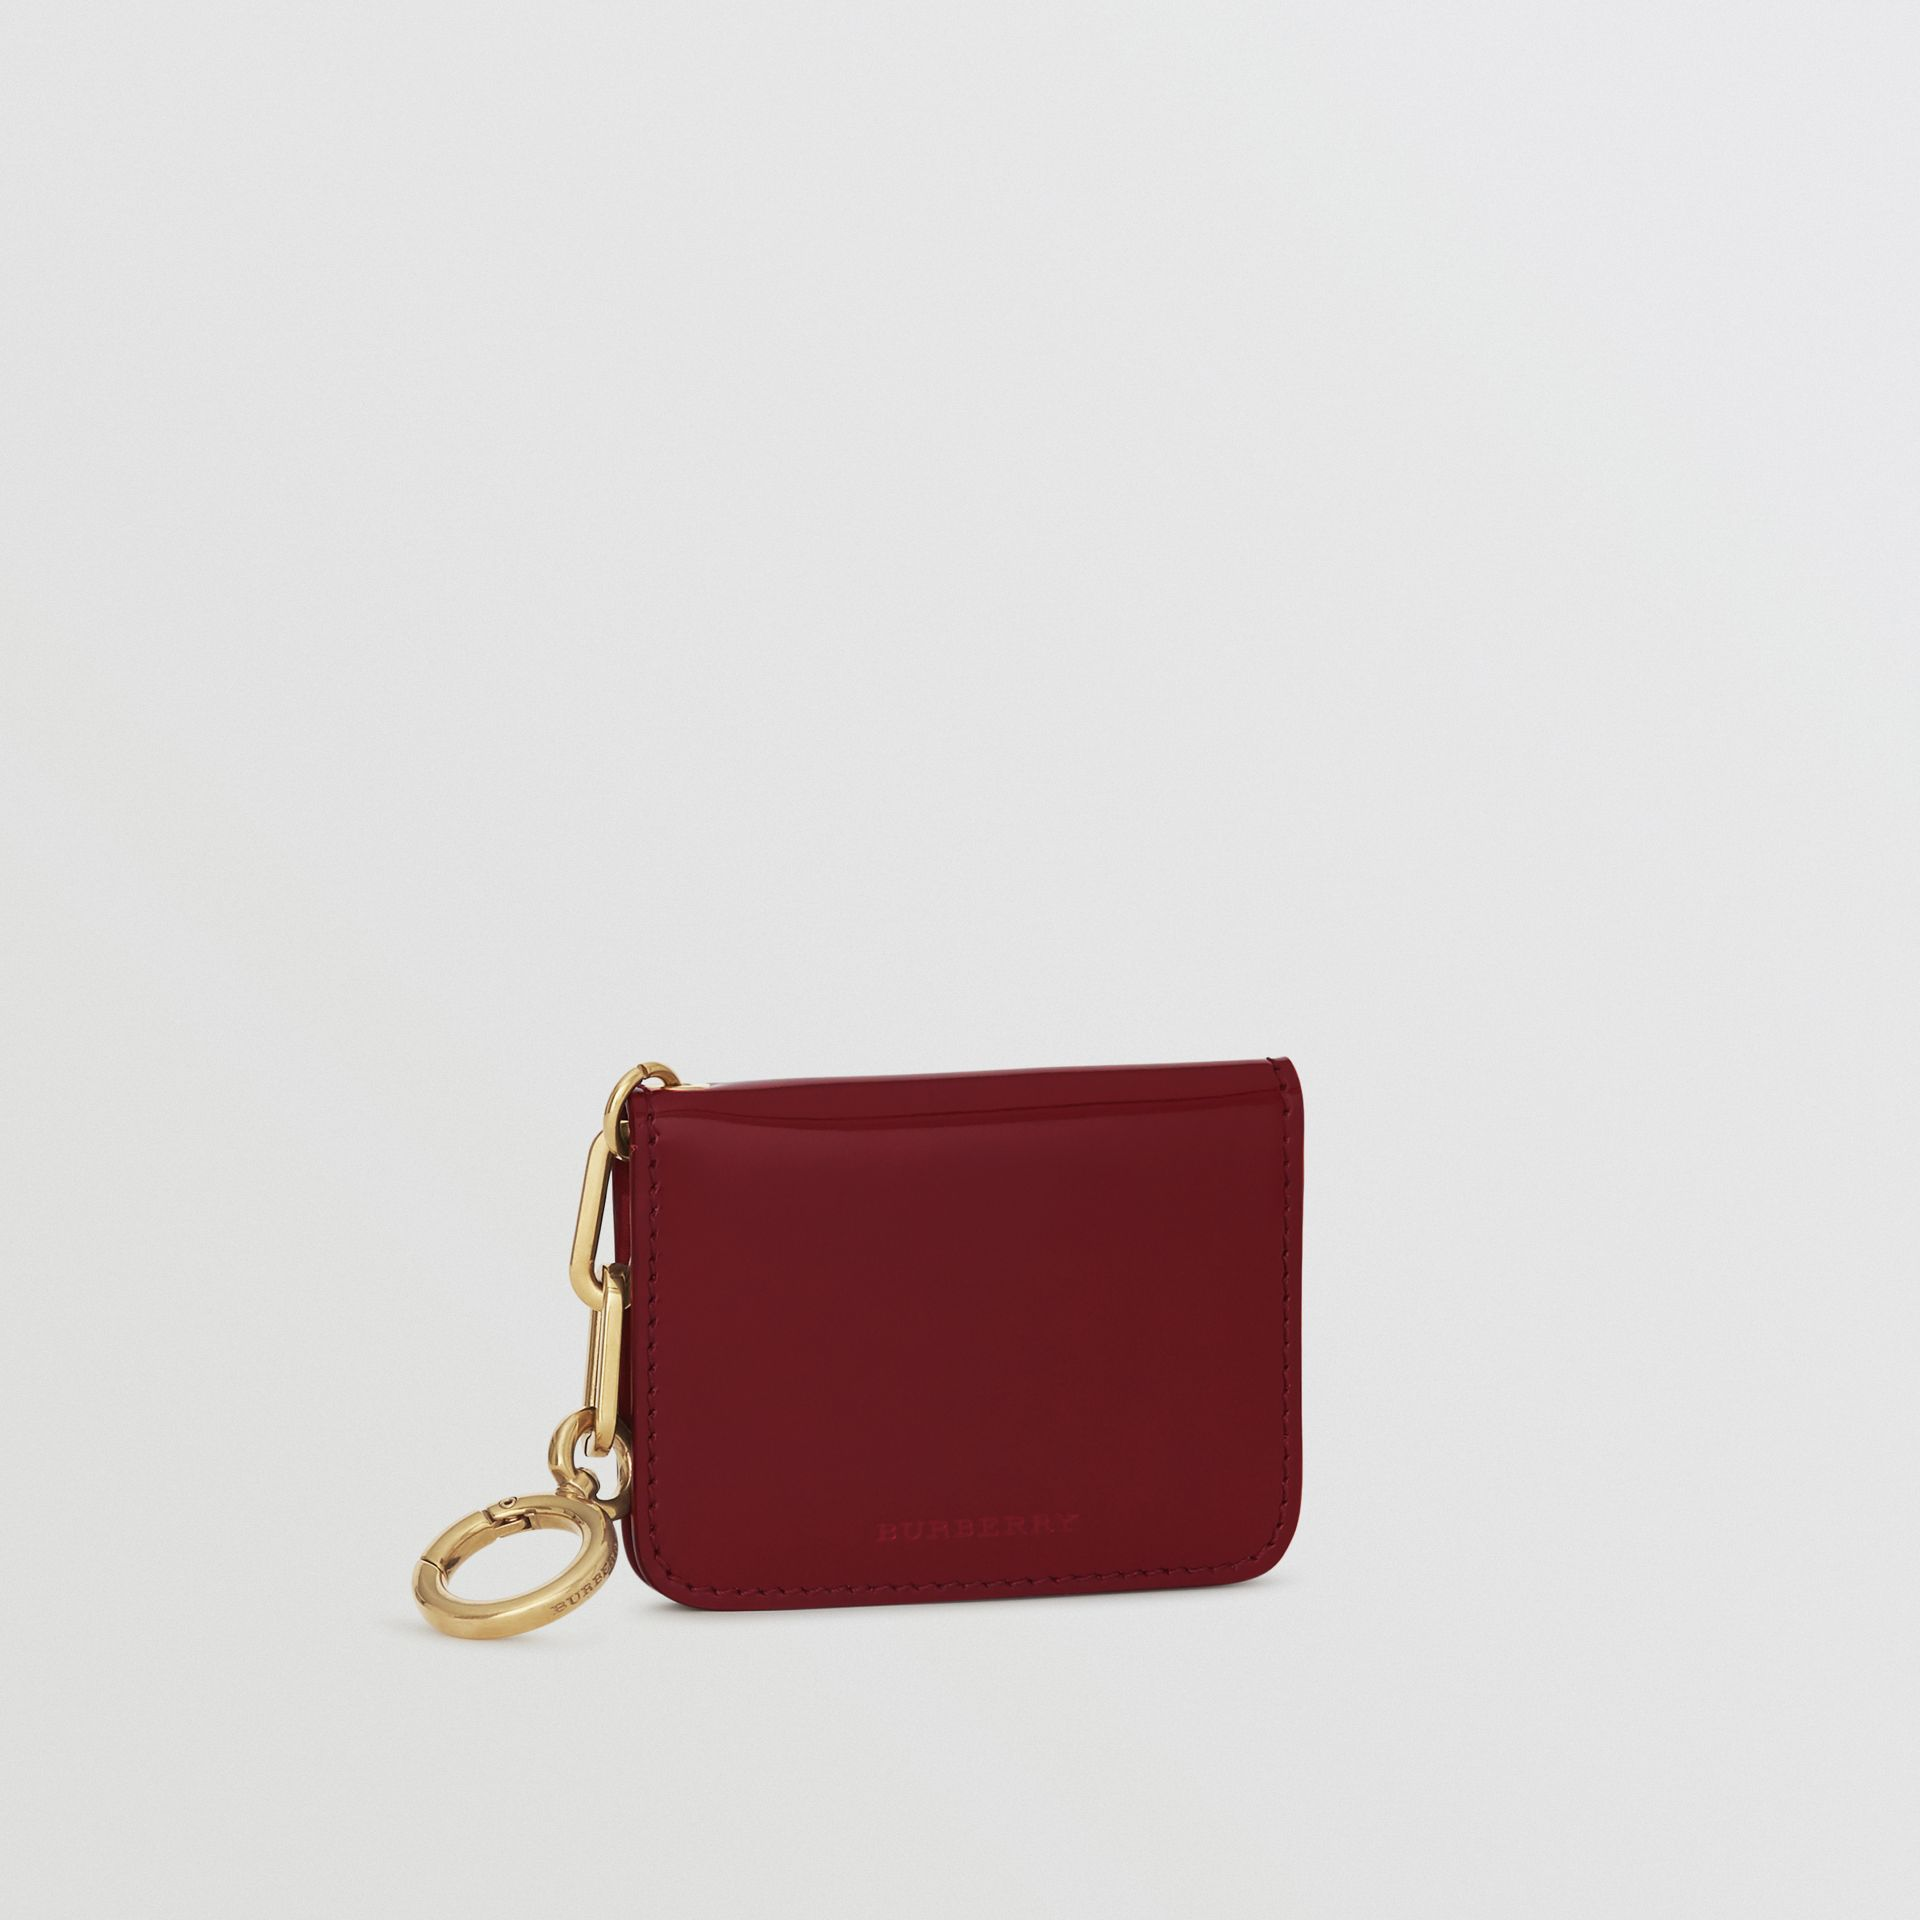 Link Detail Patent Leather ID Card Case Charm in Crimson - Women | Burberry United States - gallery image 4